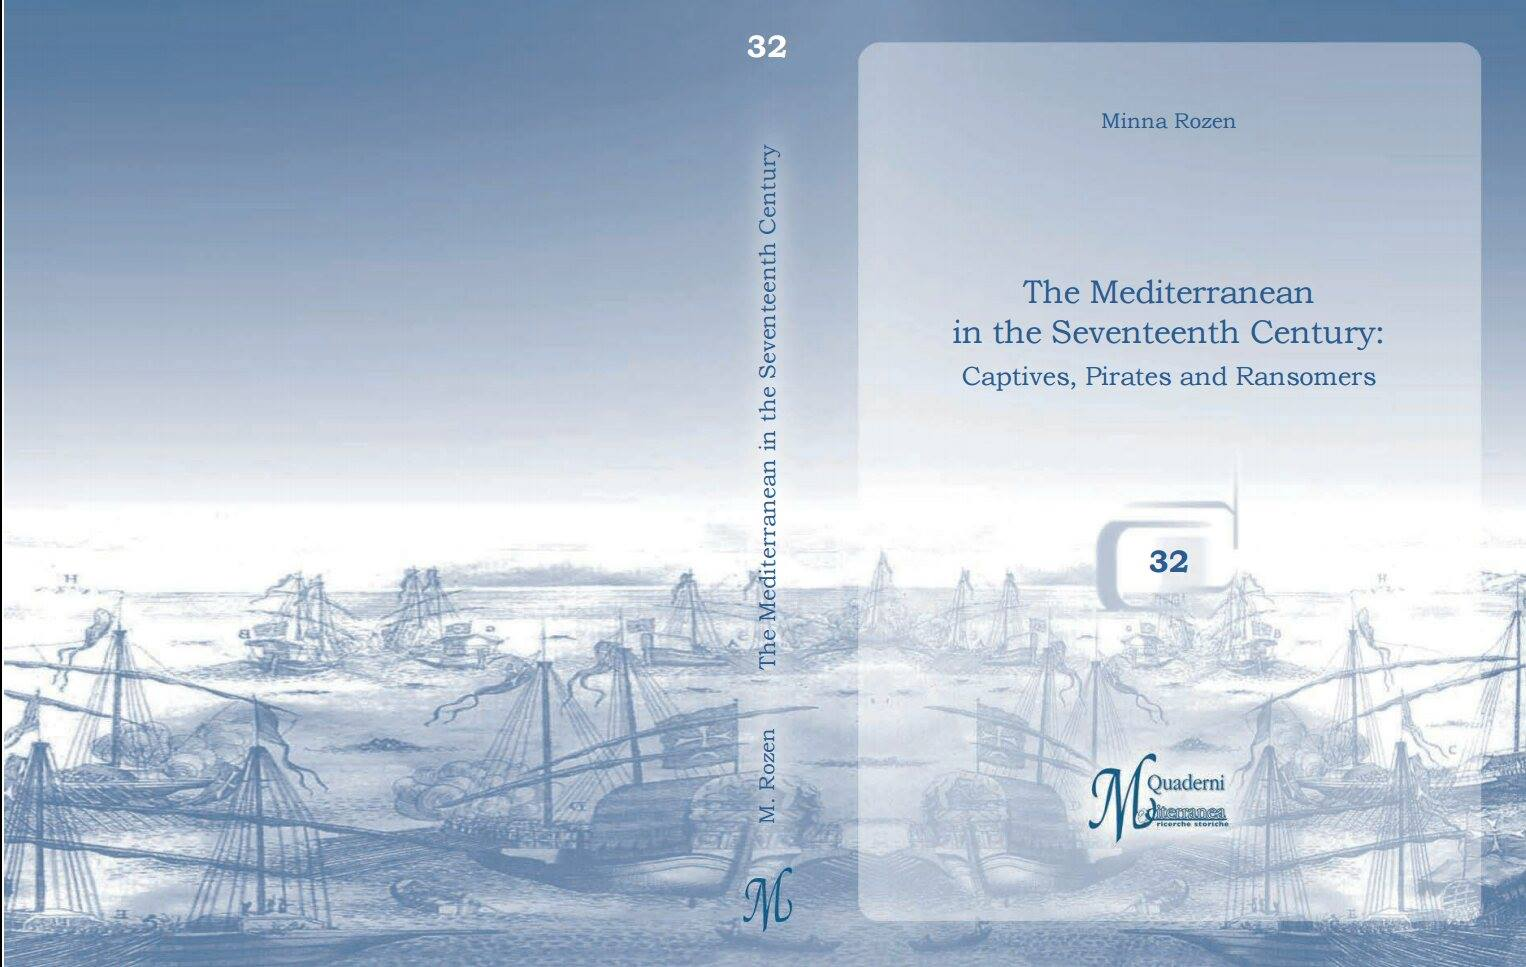 M. Rozen, The Mediterranean in the Seventeenth Century: Captives, Pirates and Ransomers